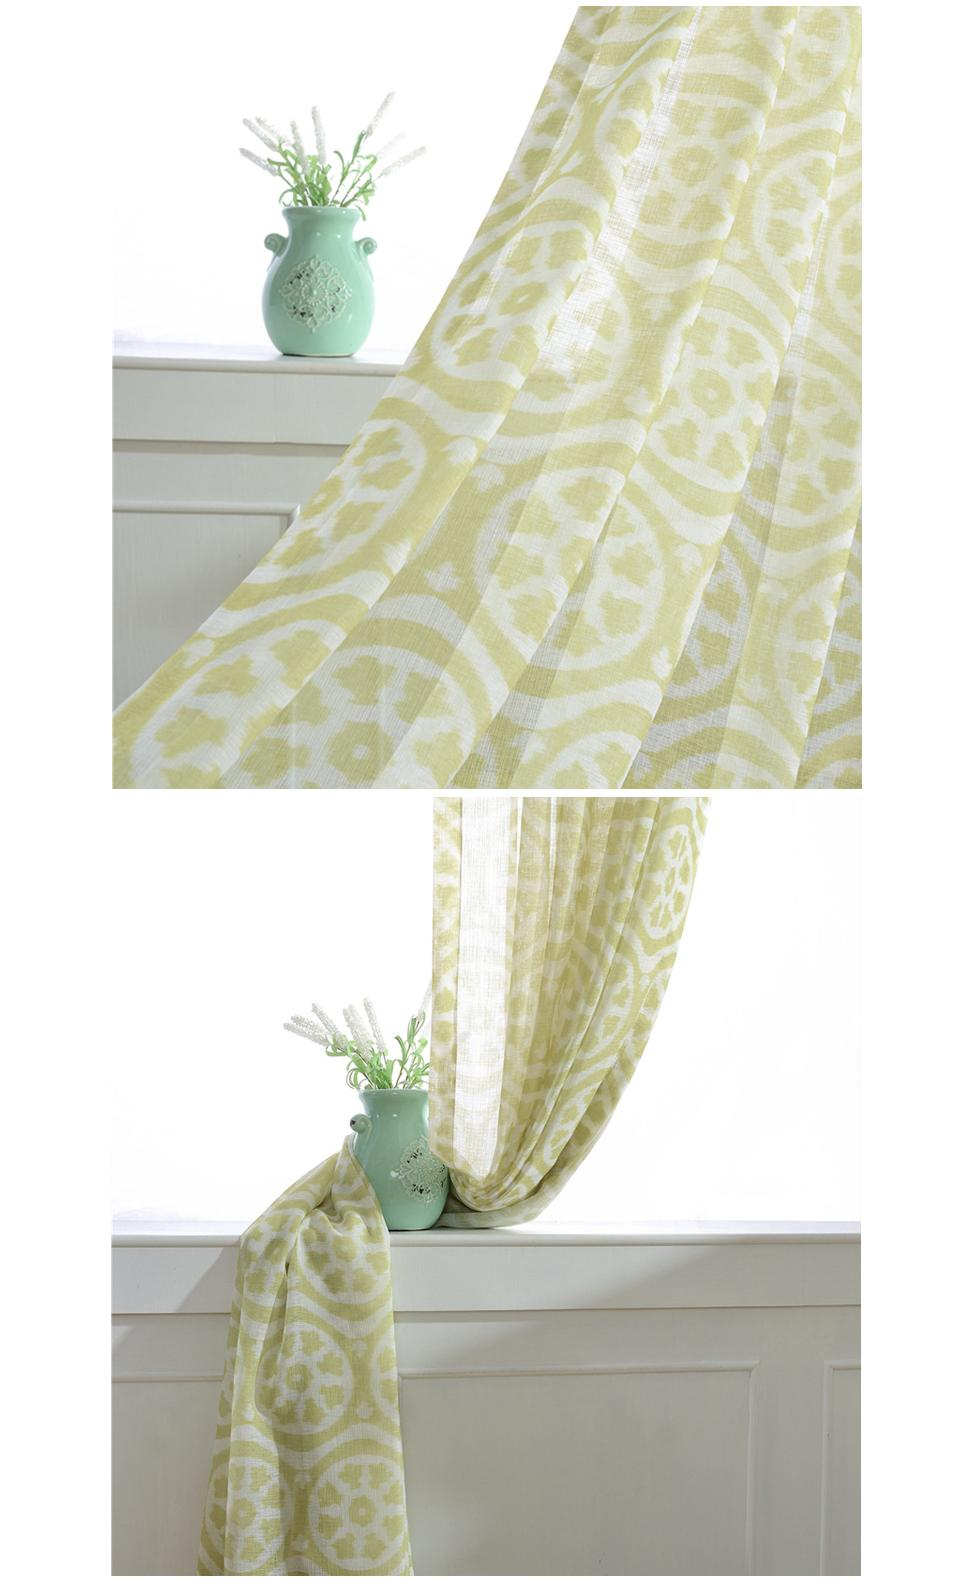 Lemon Green Curtains Norne Modern Tulle Window Sheer Curtains For Living Room The Bedroom The Kitchen Cortina Rideaux Lemon Print Fabric Blinds Drapes